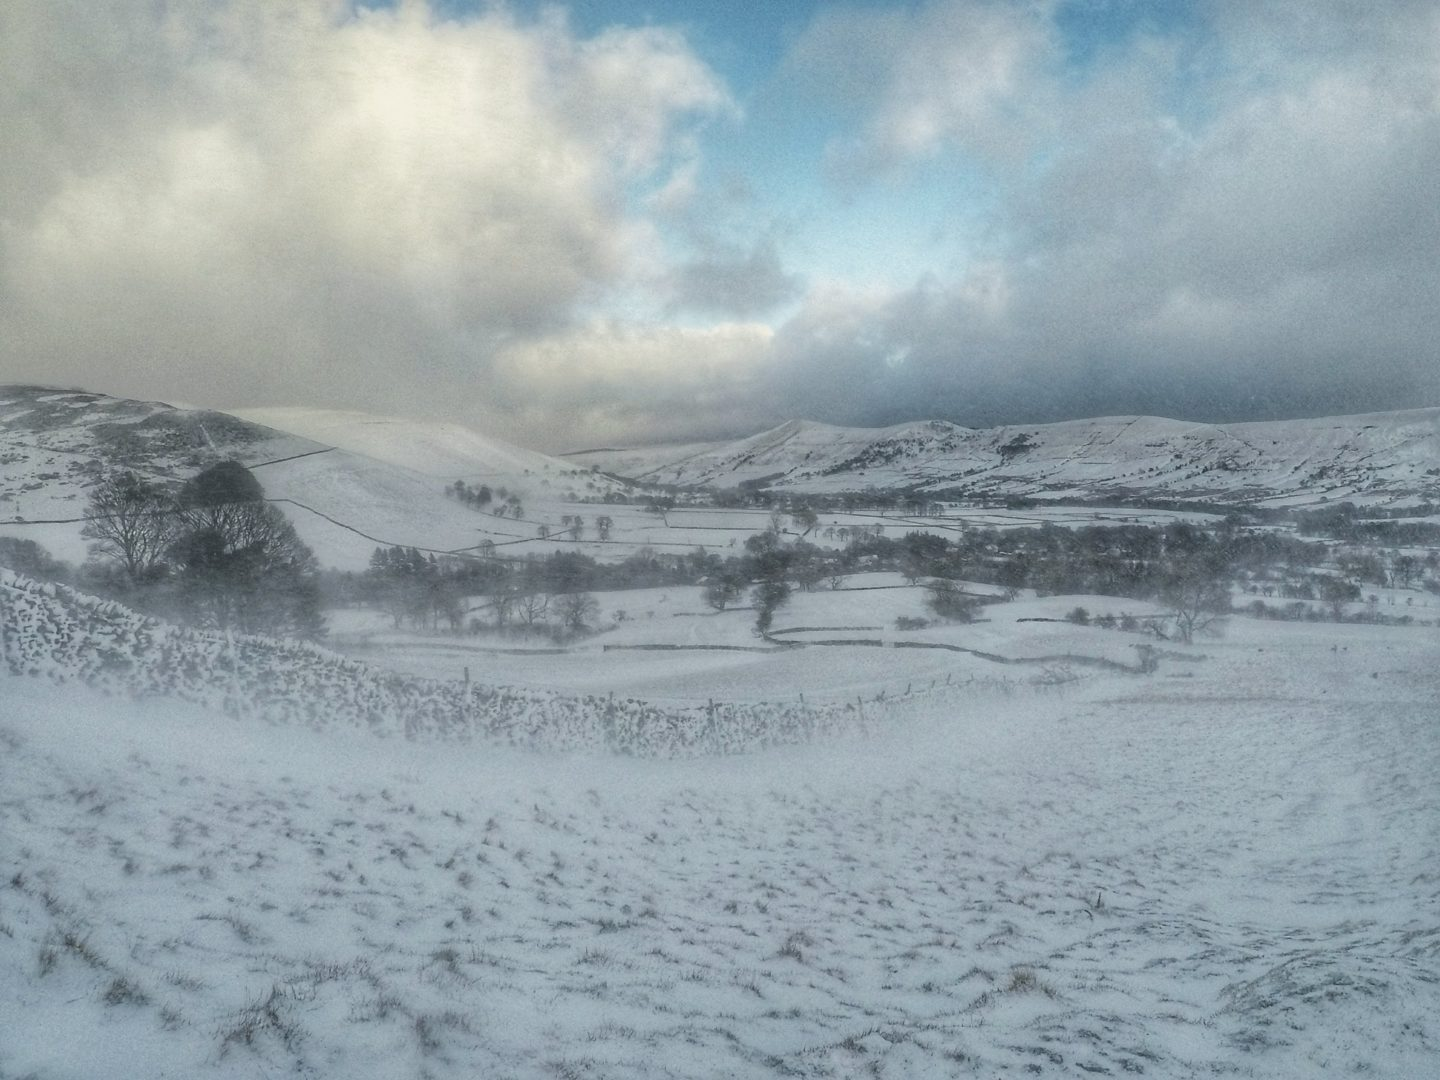 Snowy adventures in Peak District